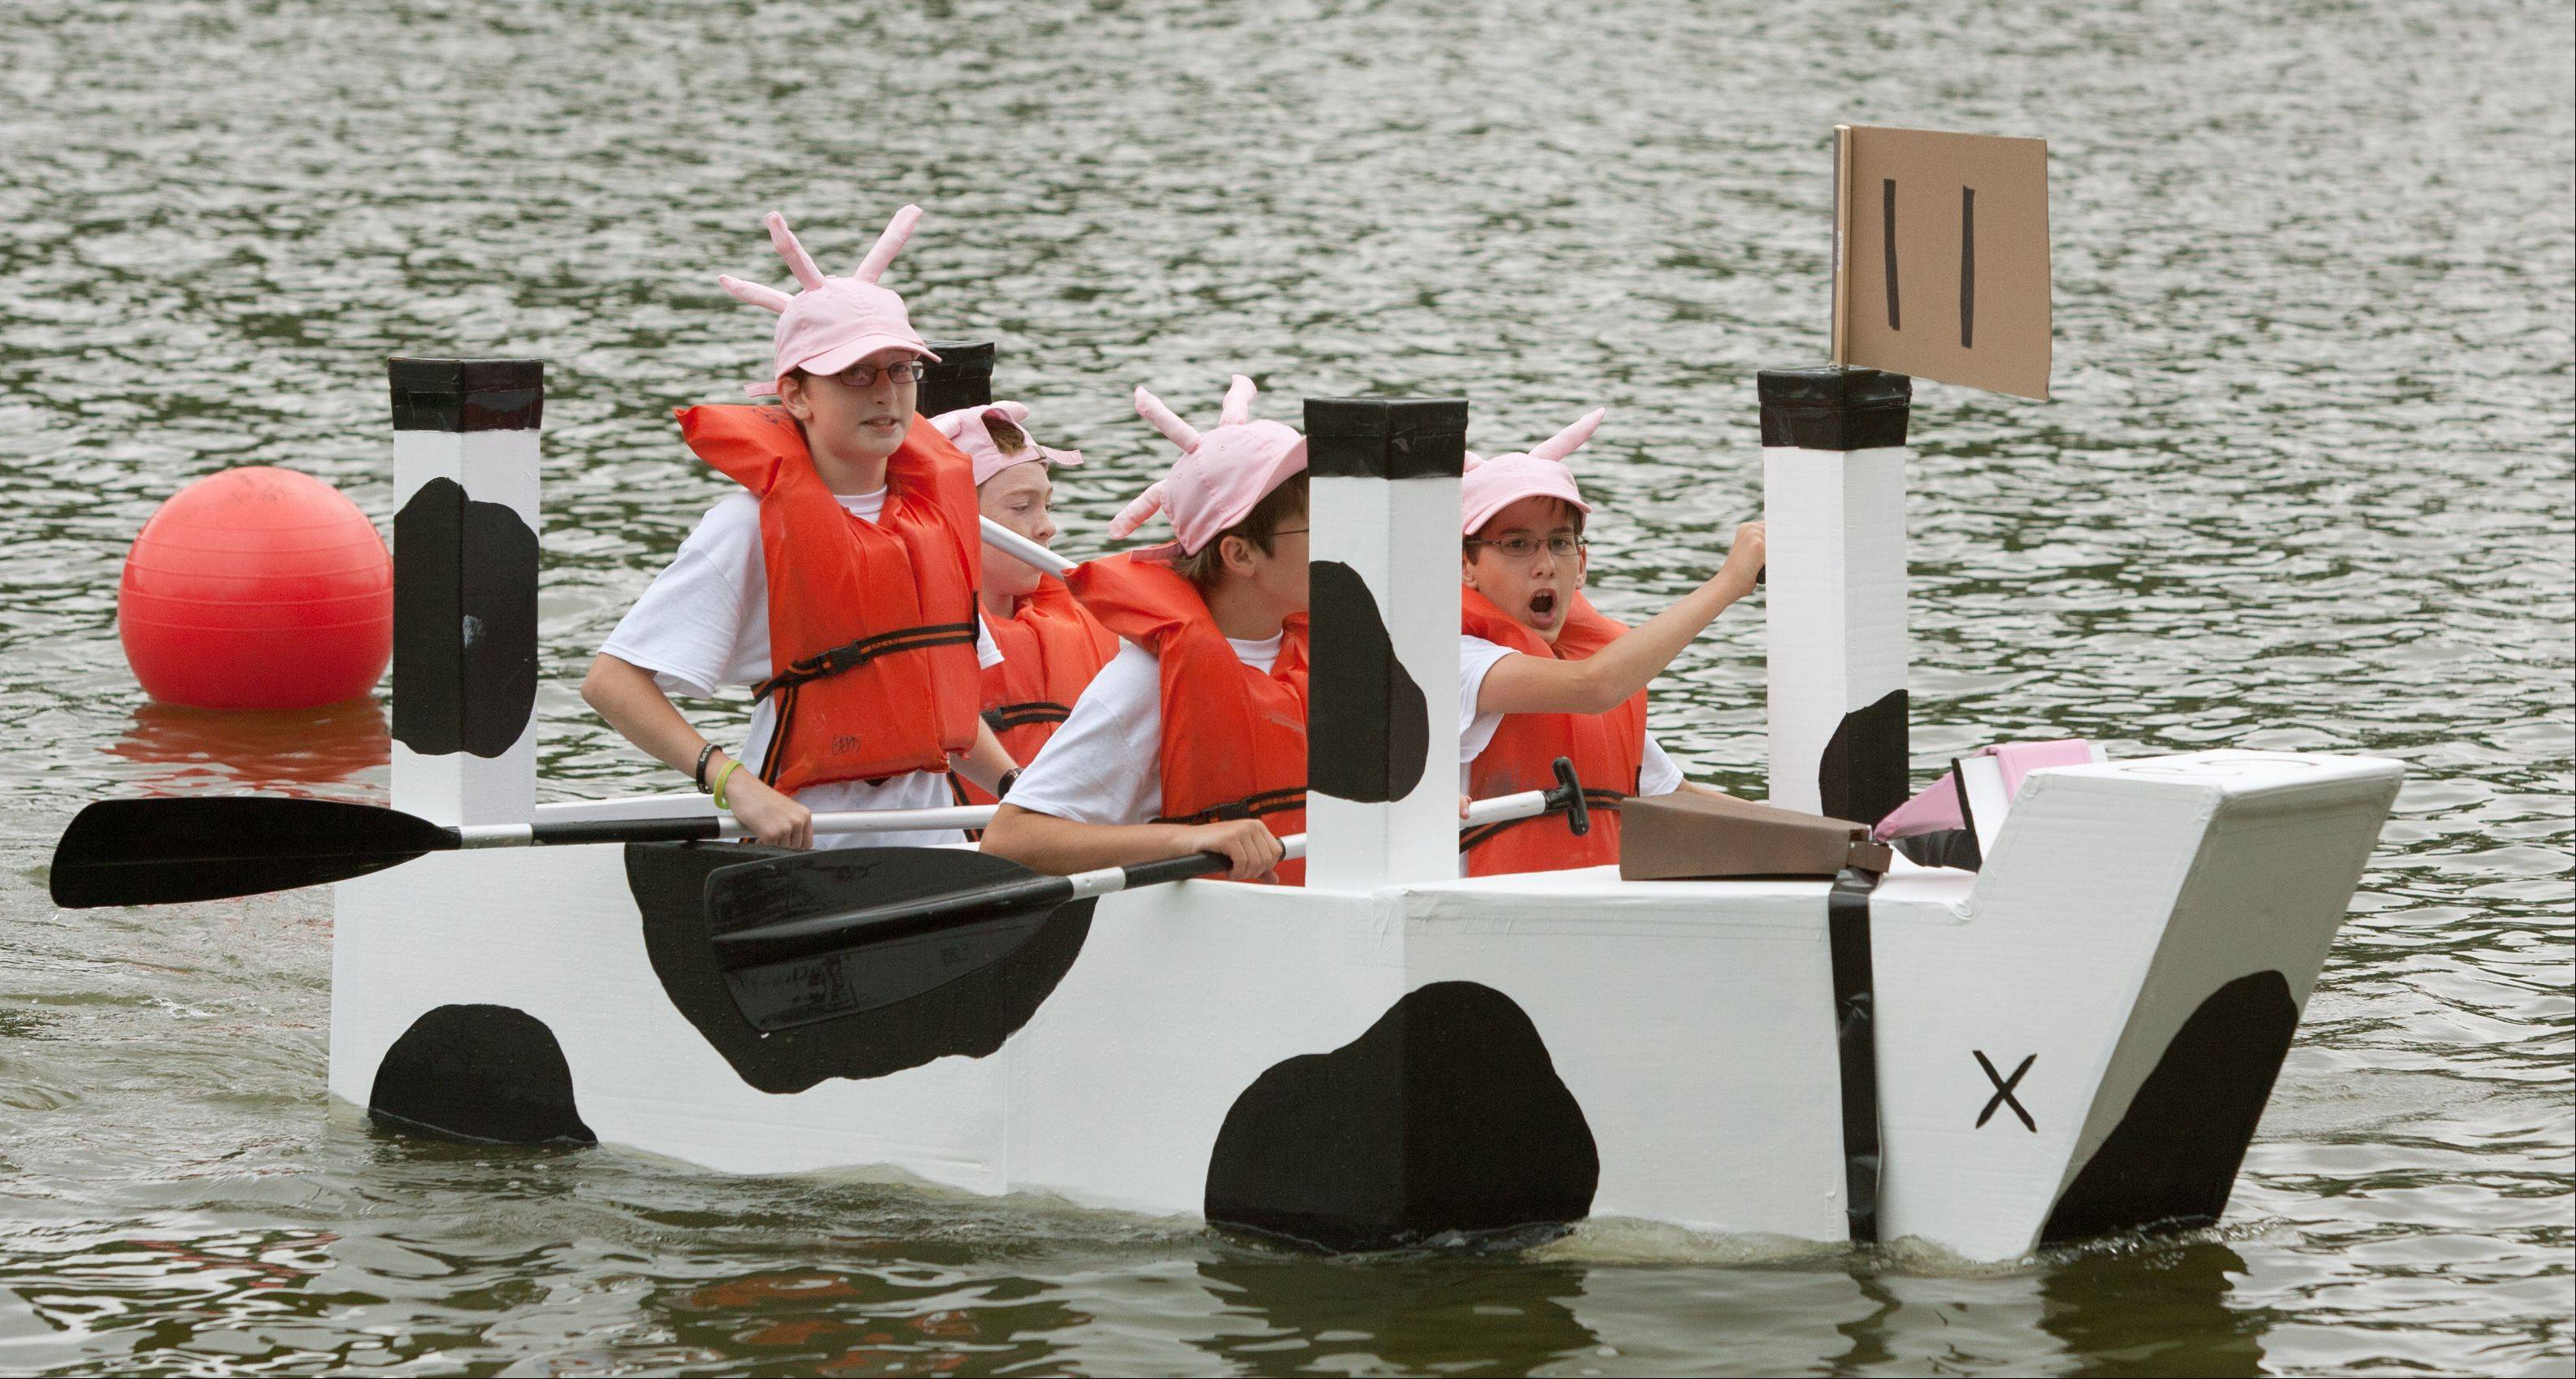 The boat Dead Cow wins its heat during the Glen Ellyn Park District's 20th annual Lake Ellyn Cardboard Regatta at Lake Ellyn. Paddlers David Messerschmidt, Matt Hoerster, Tyler Jackson and Kevin Condon steered their way to victory.